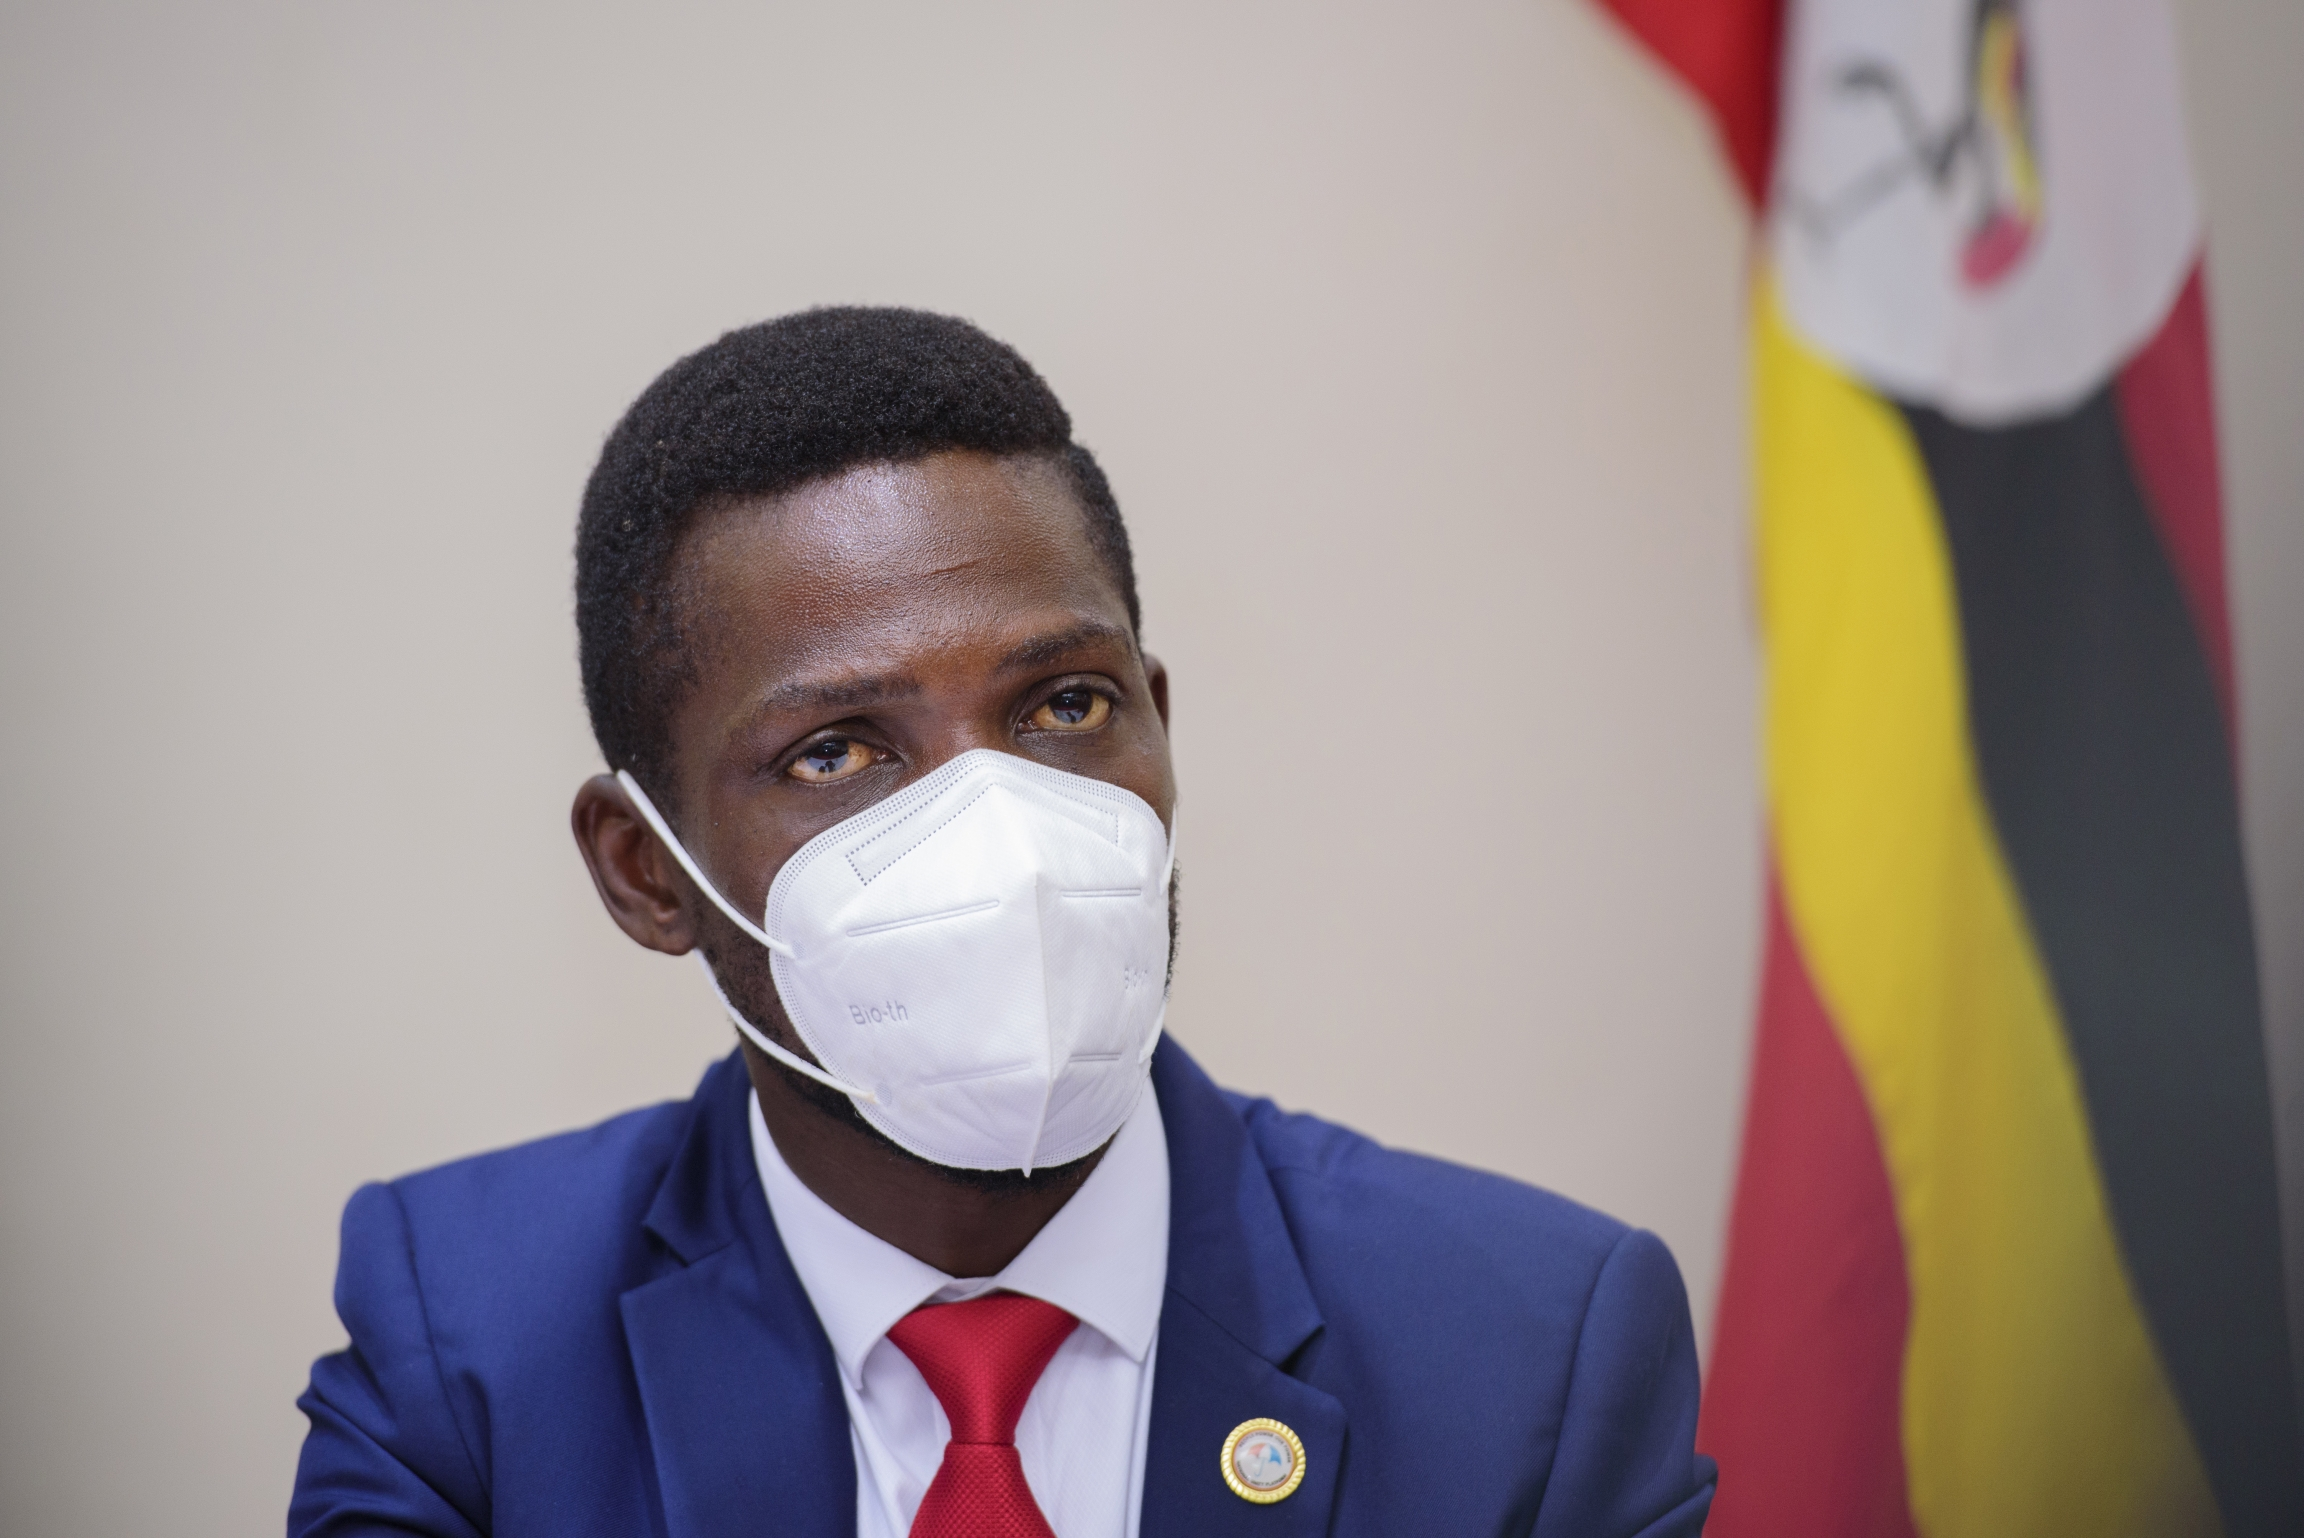 Bobi Wine, during a press conference in Kampala Uganda, Tuesday, Jan.12, 2021, wears a white face mask and blue suit with red tie.